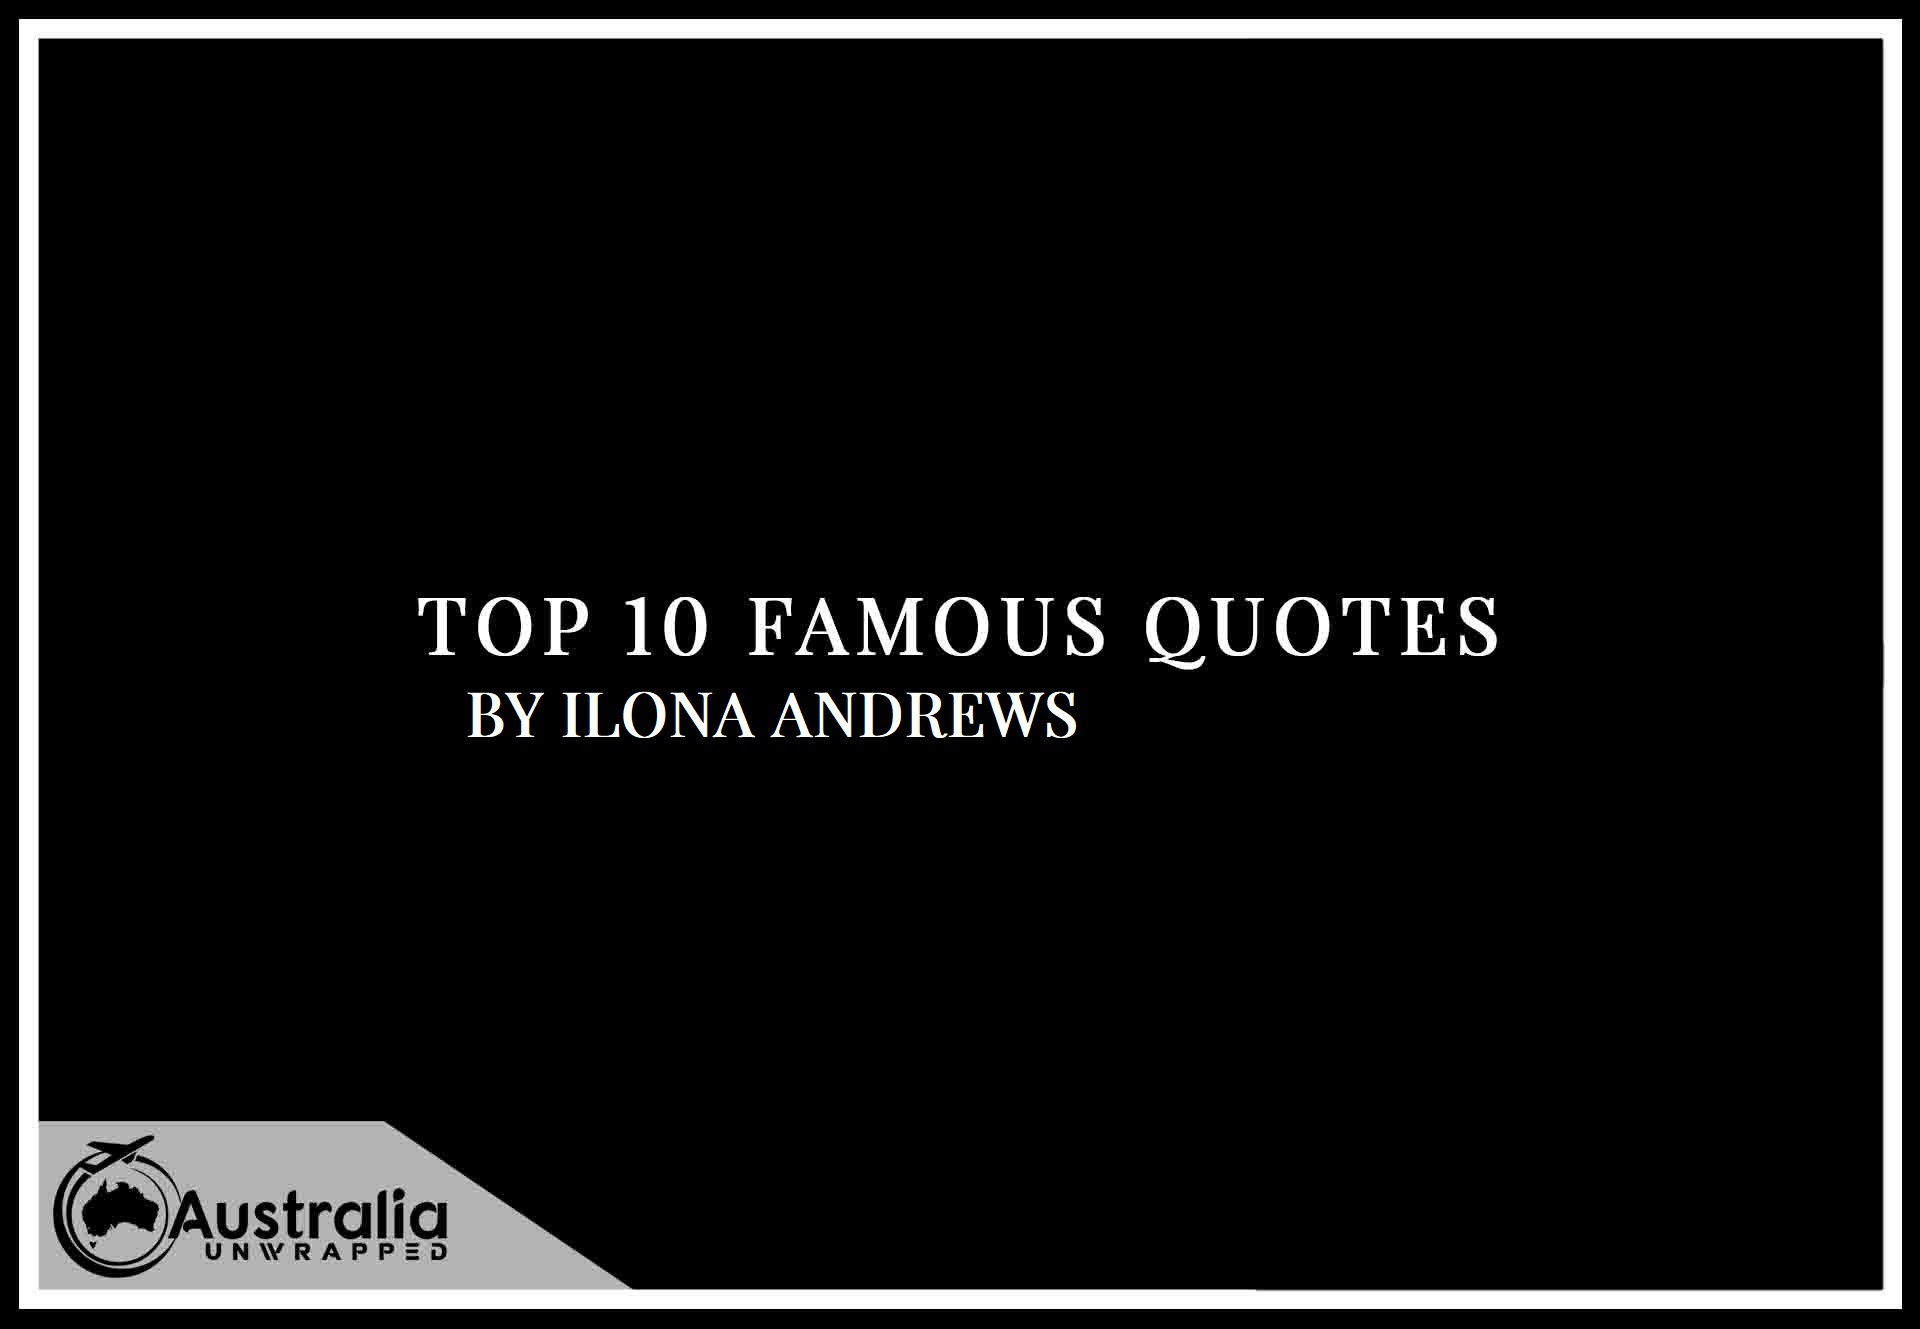 Top 10 Famous Quotes by Author Ilona Andrews